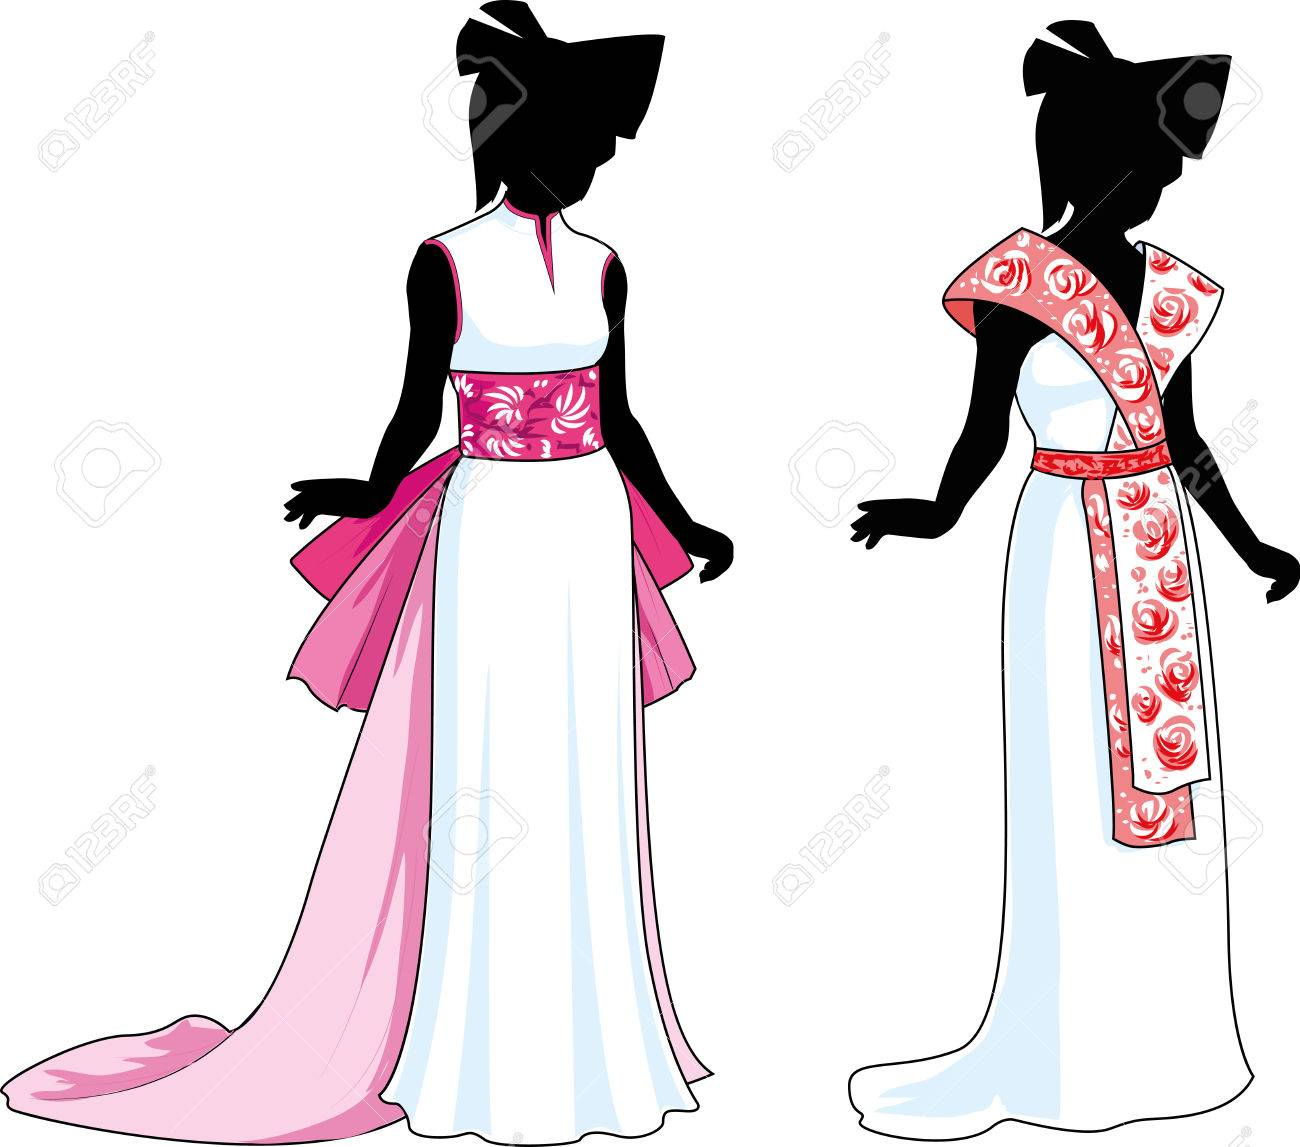 silhouette beautiful woman in unusual white wedding gown with asian ethnic elements design variation isolated cartoon illustrations Stock Vector - 26008766